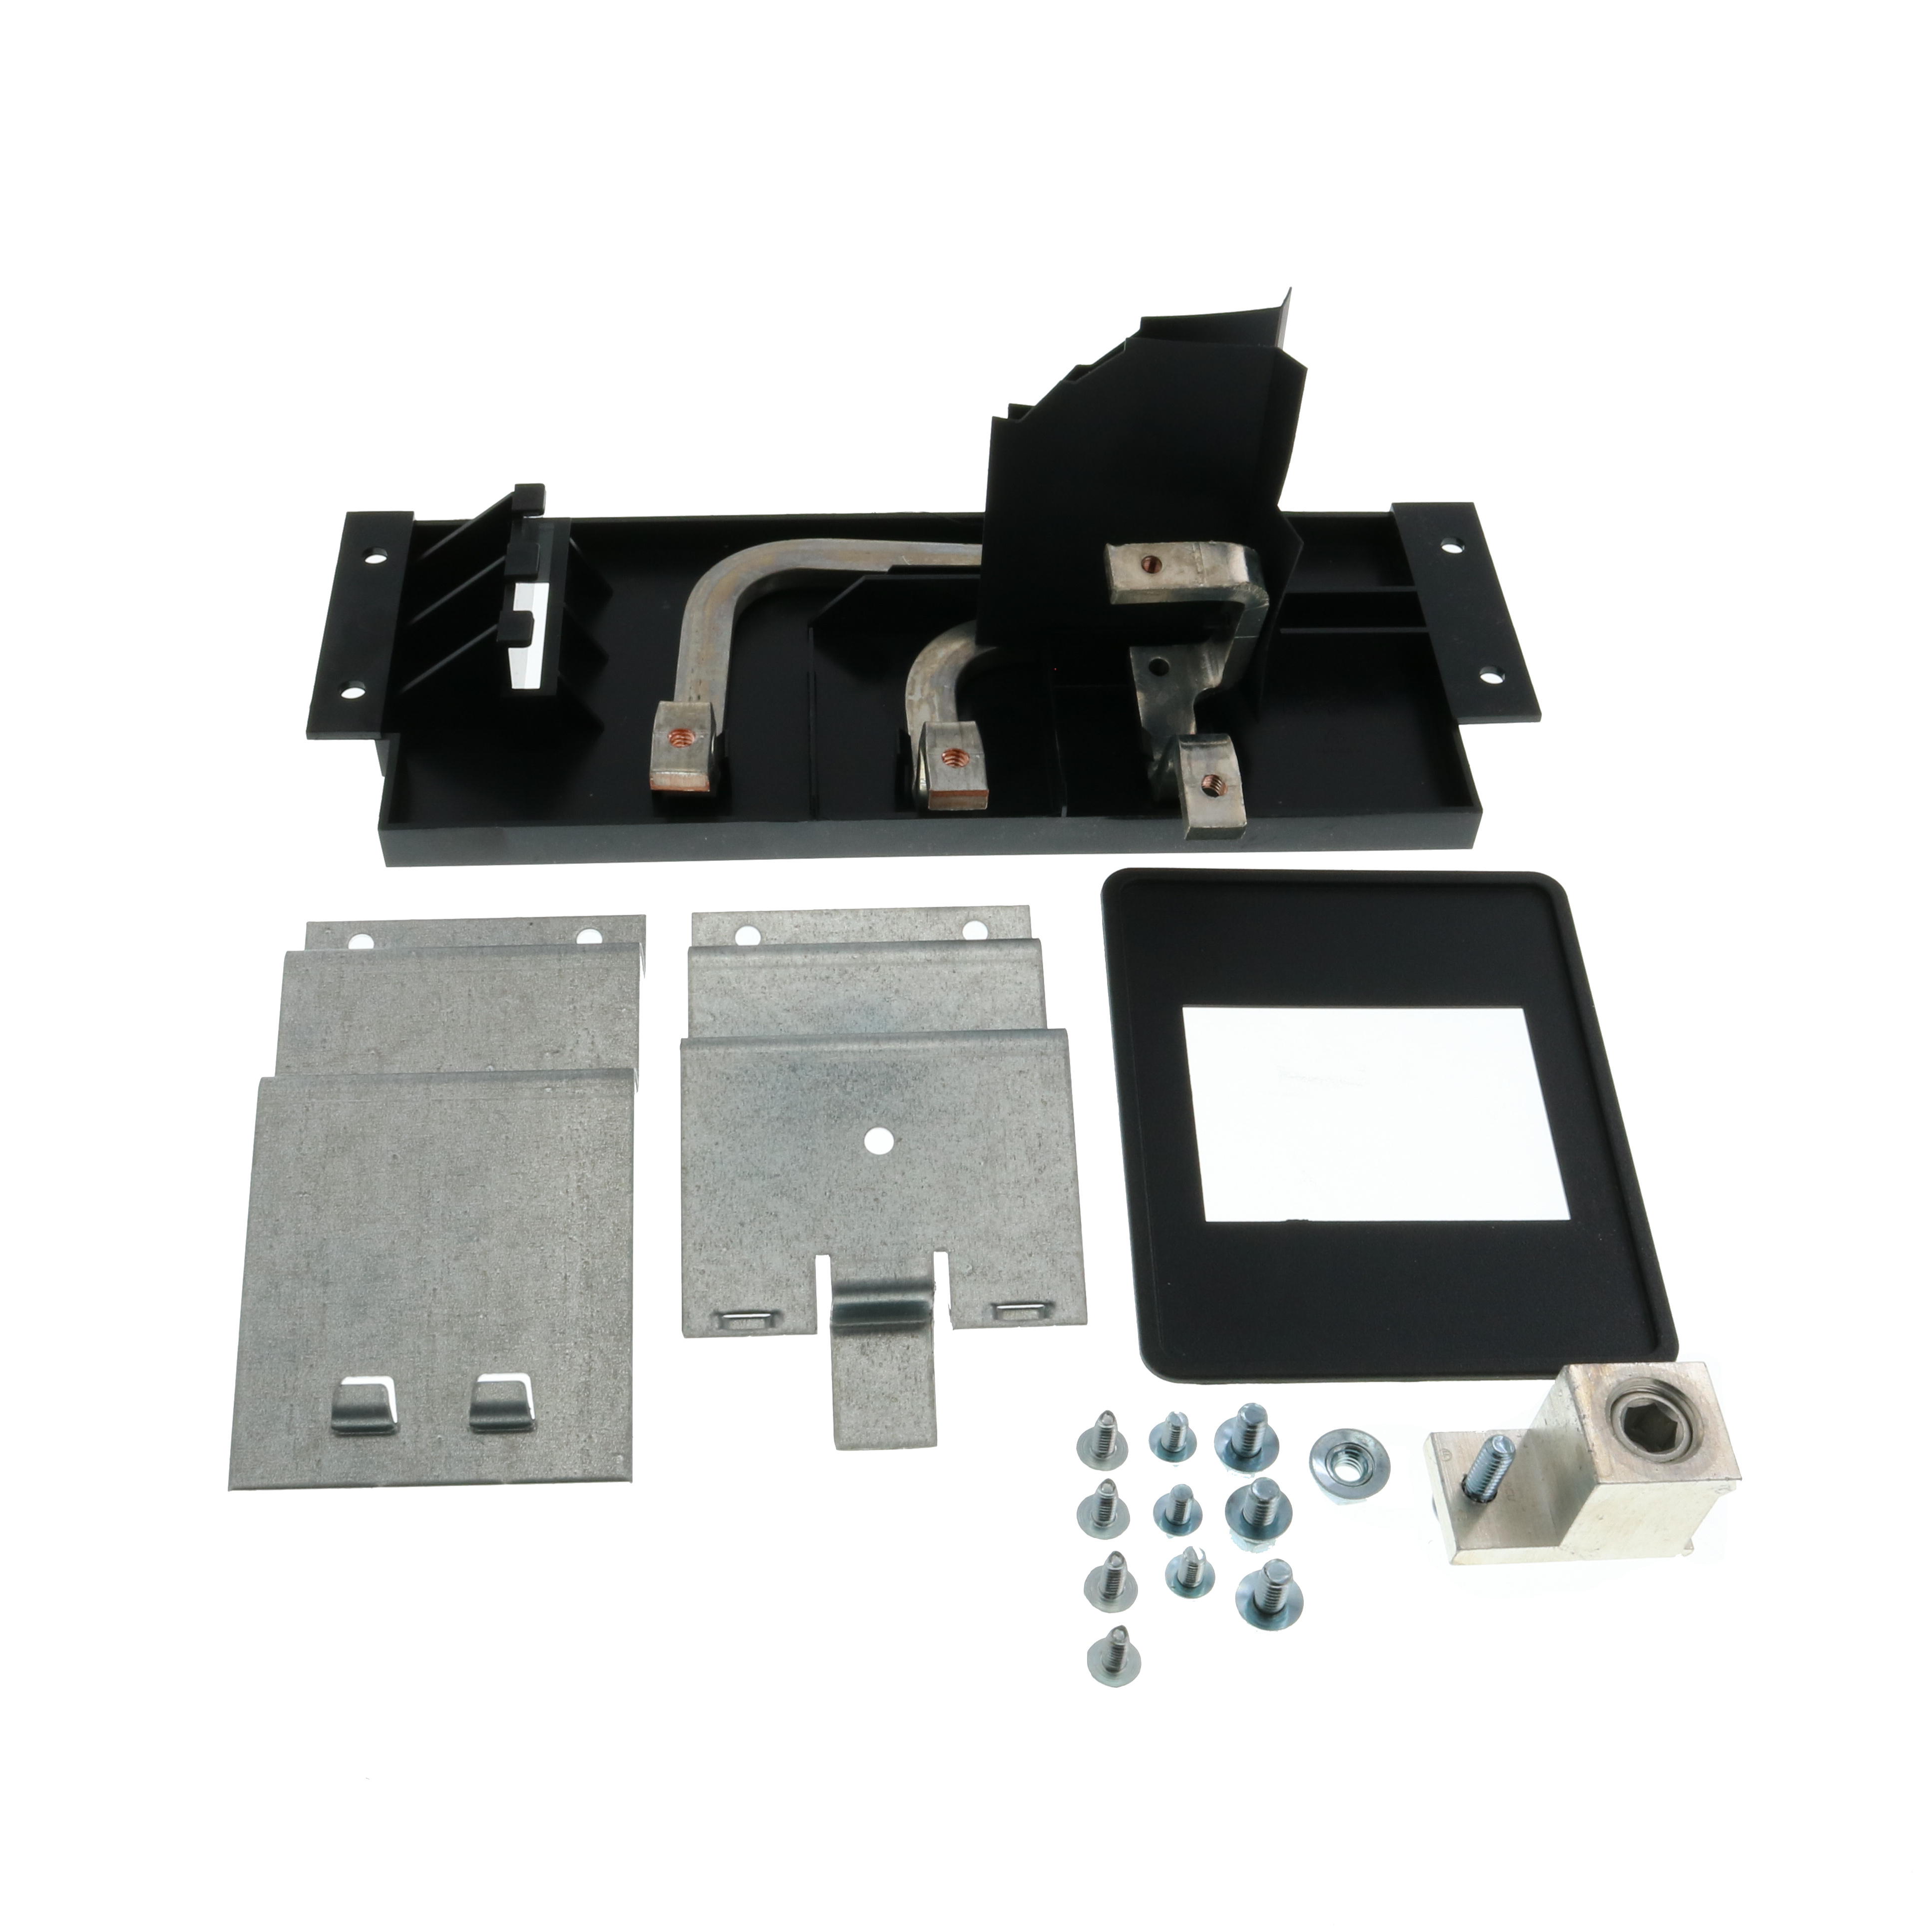 Murray Mbk3100 Qp Main Breaker Kit 240 Volt 100 Amp For: Circuit Protection Devices Circuit Breakers Siemens